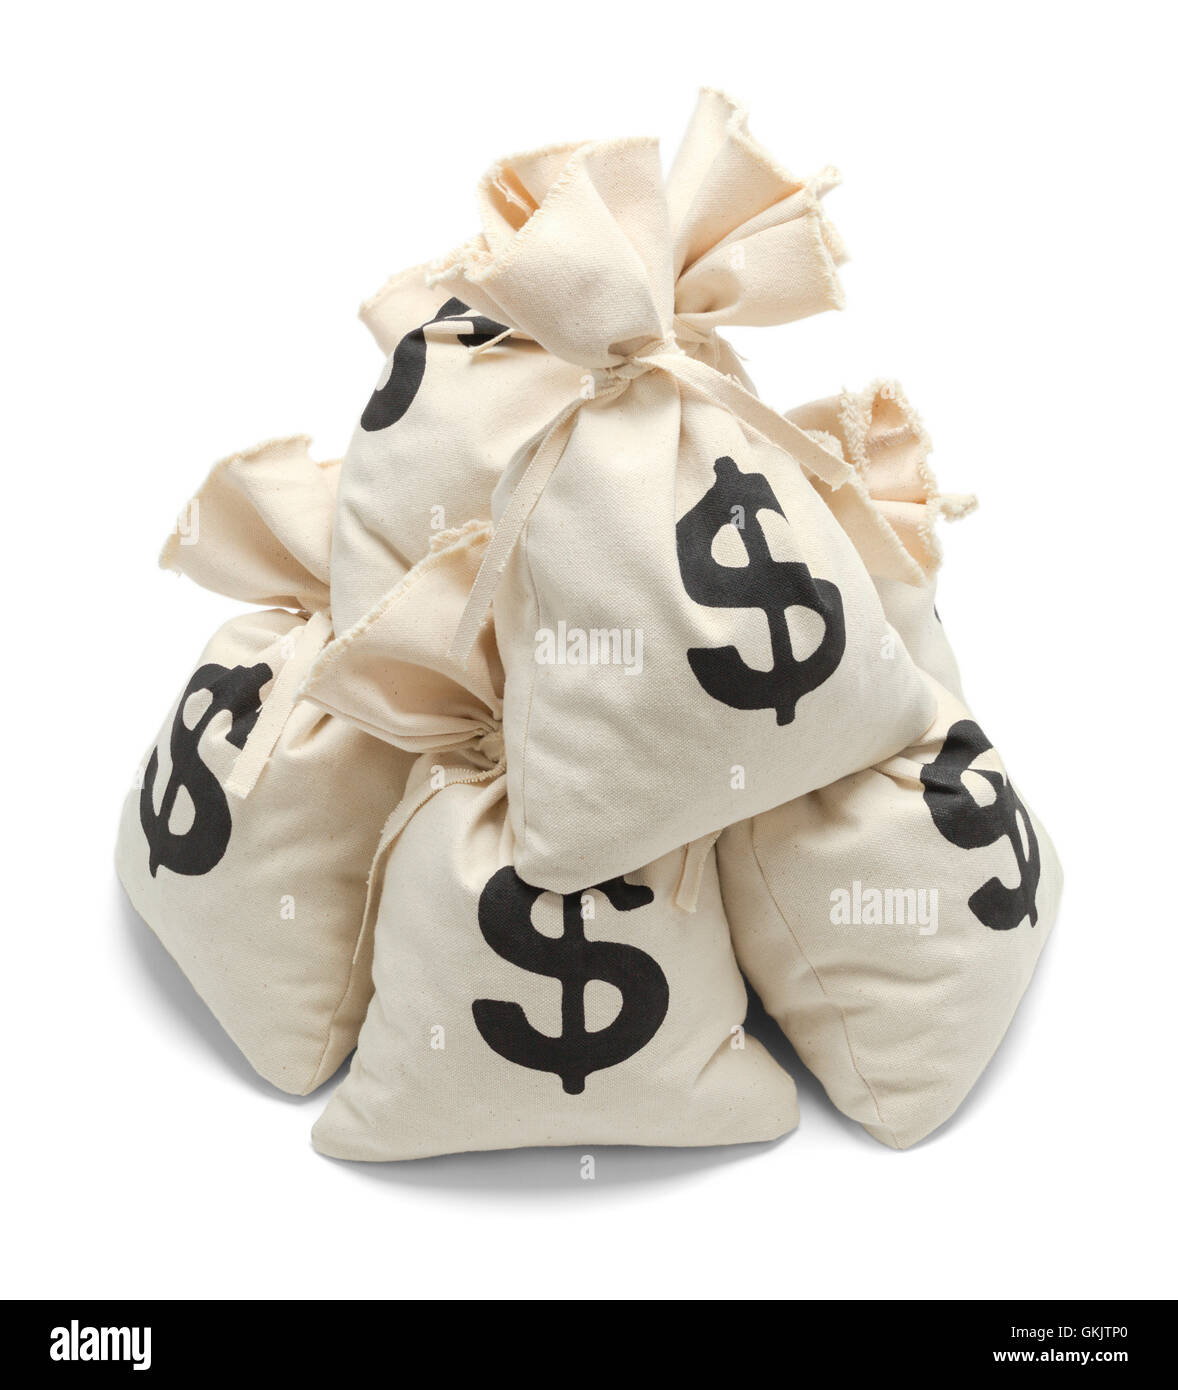 Pile of Bank Money Bags Isolated on White Background. - Stock Image